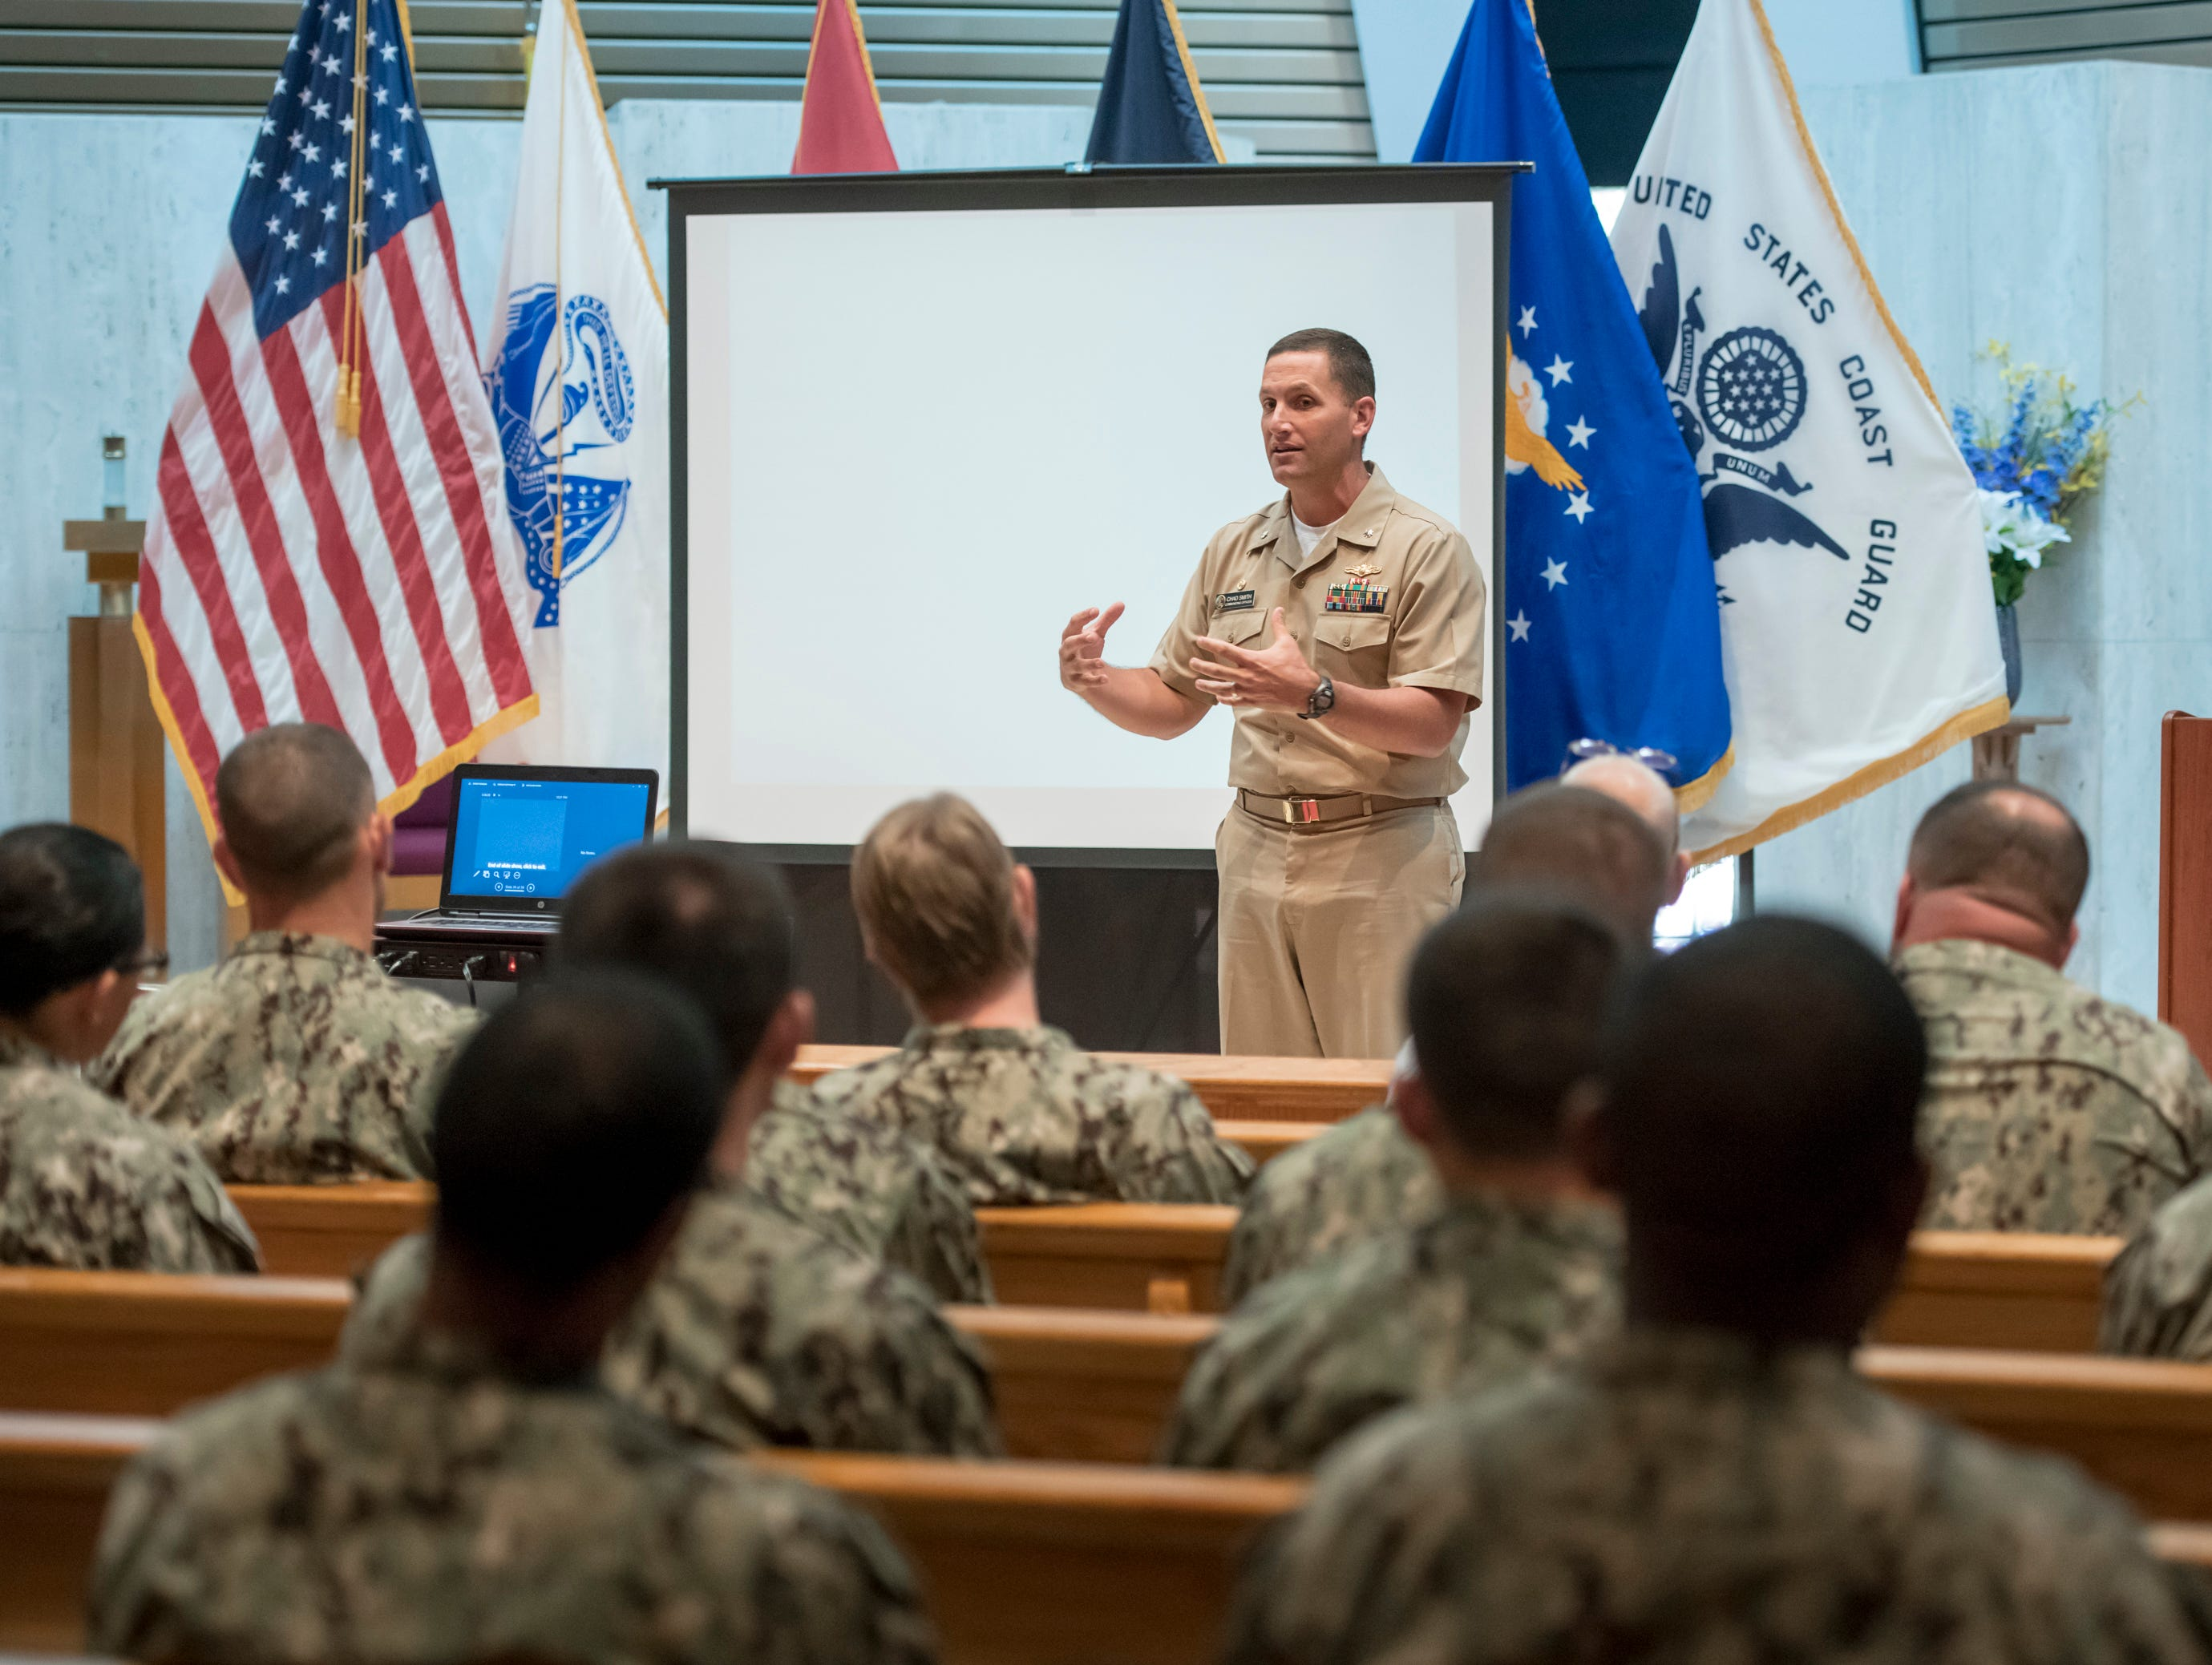 """Cmdr. Chad Smith, commanding officer Information Warfare Training Command Corry Station, speaks during a memorial service for the fallen crew of the EC-121M """"Beggar Shadow"""" reconnaissance plane at Corry Station in Pensacola on Monday, April 15, 2019.  The Navy EC-121M reconnaissance aircraft (PR-21/BuNo 135749) of Fleet Air Reconnaissance Squadron One (VQ-1) was shot down over the Sea of Japan by North Korea on Monday, April 14,1969.  All 31 crewmembers were killed, including nine NAVSECGRU cryptologists."""